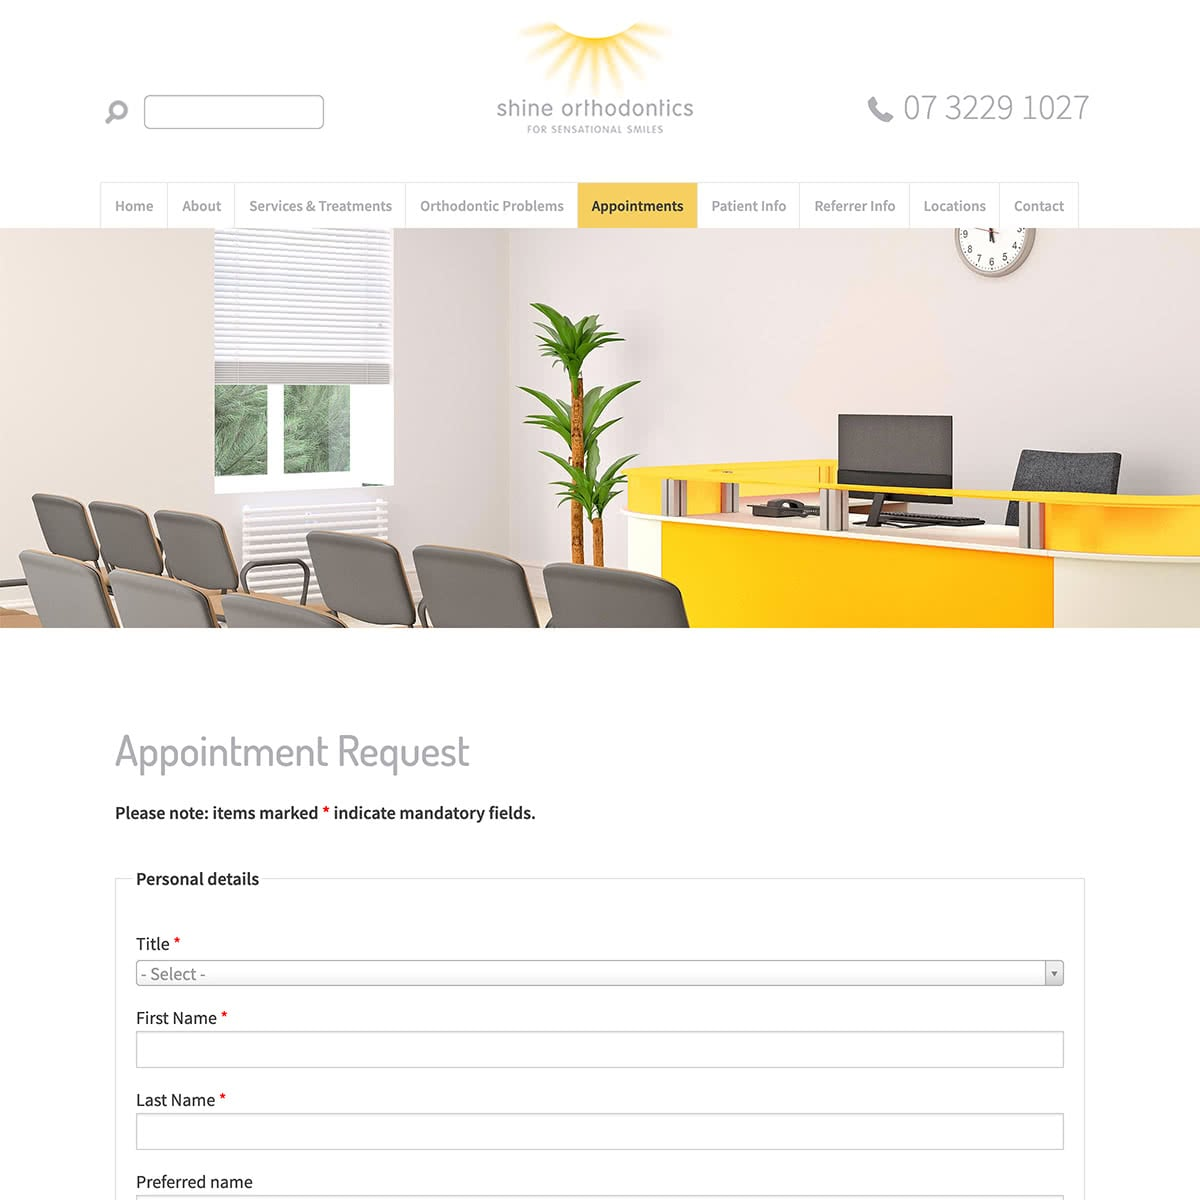 Shine Orthodontics - Appointments